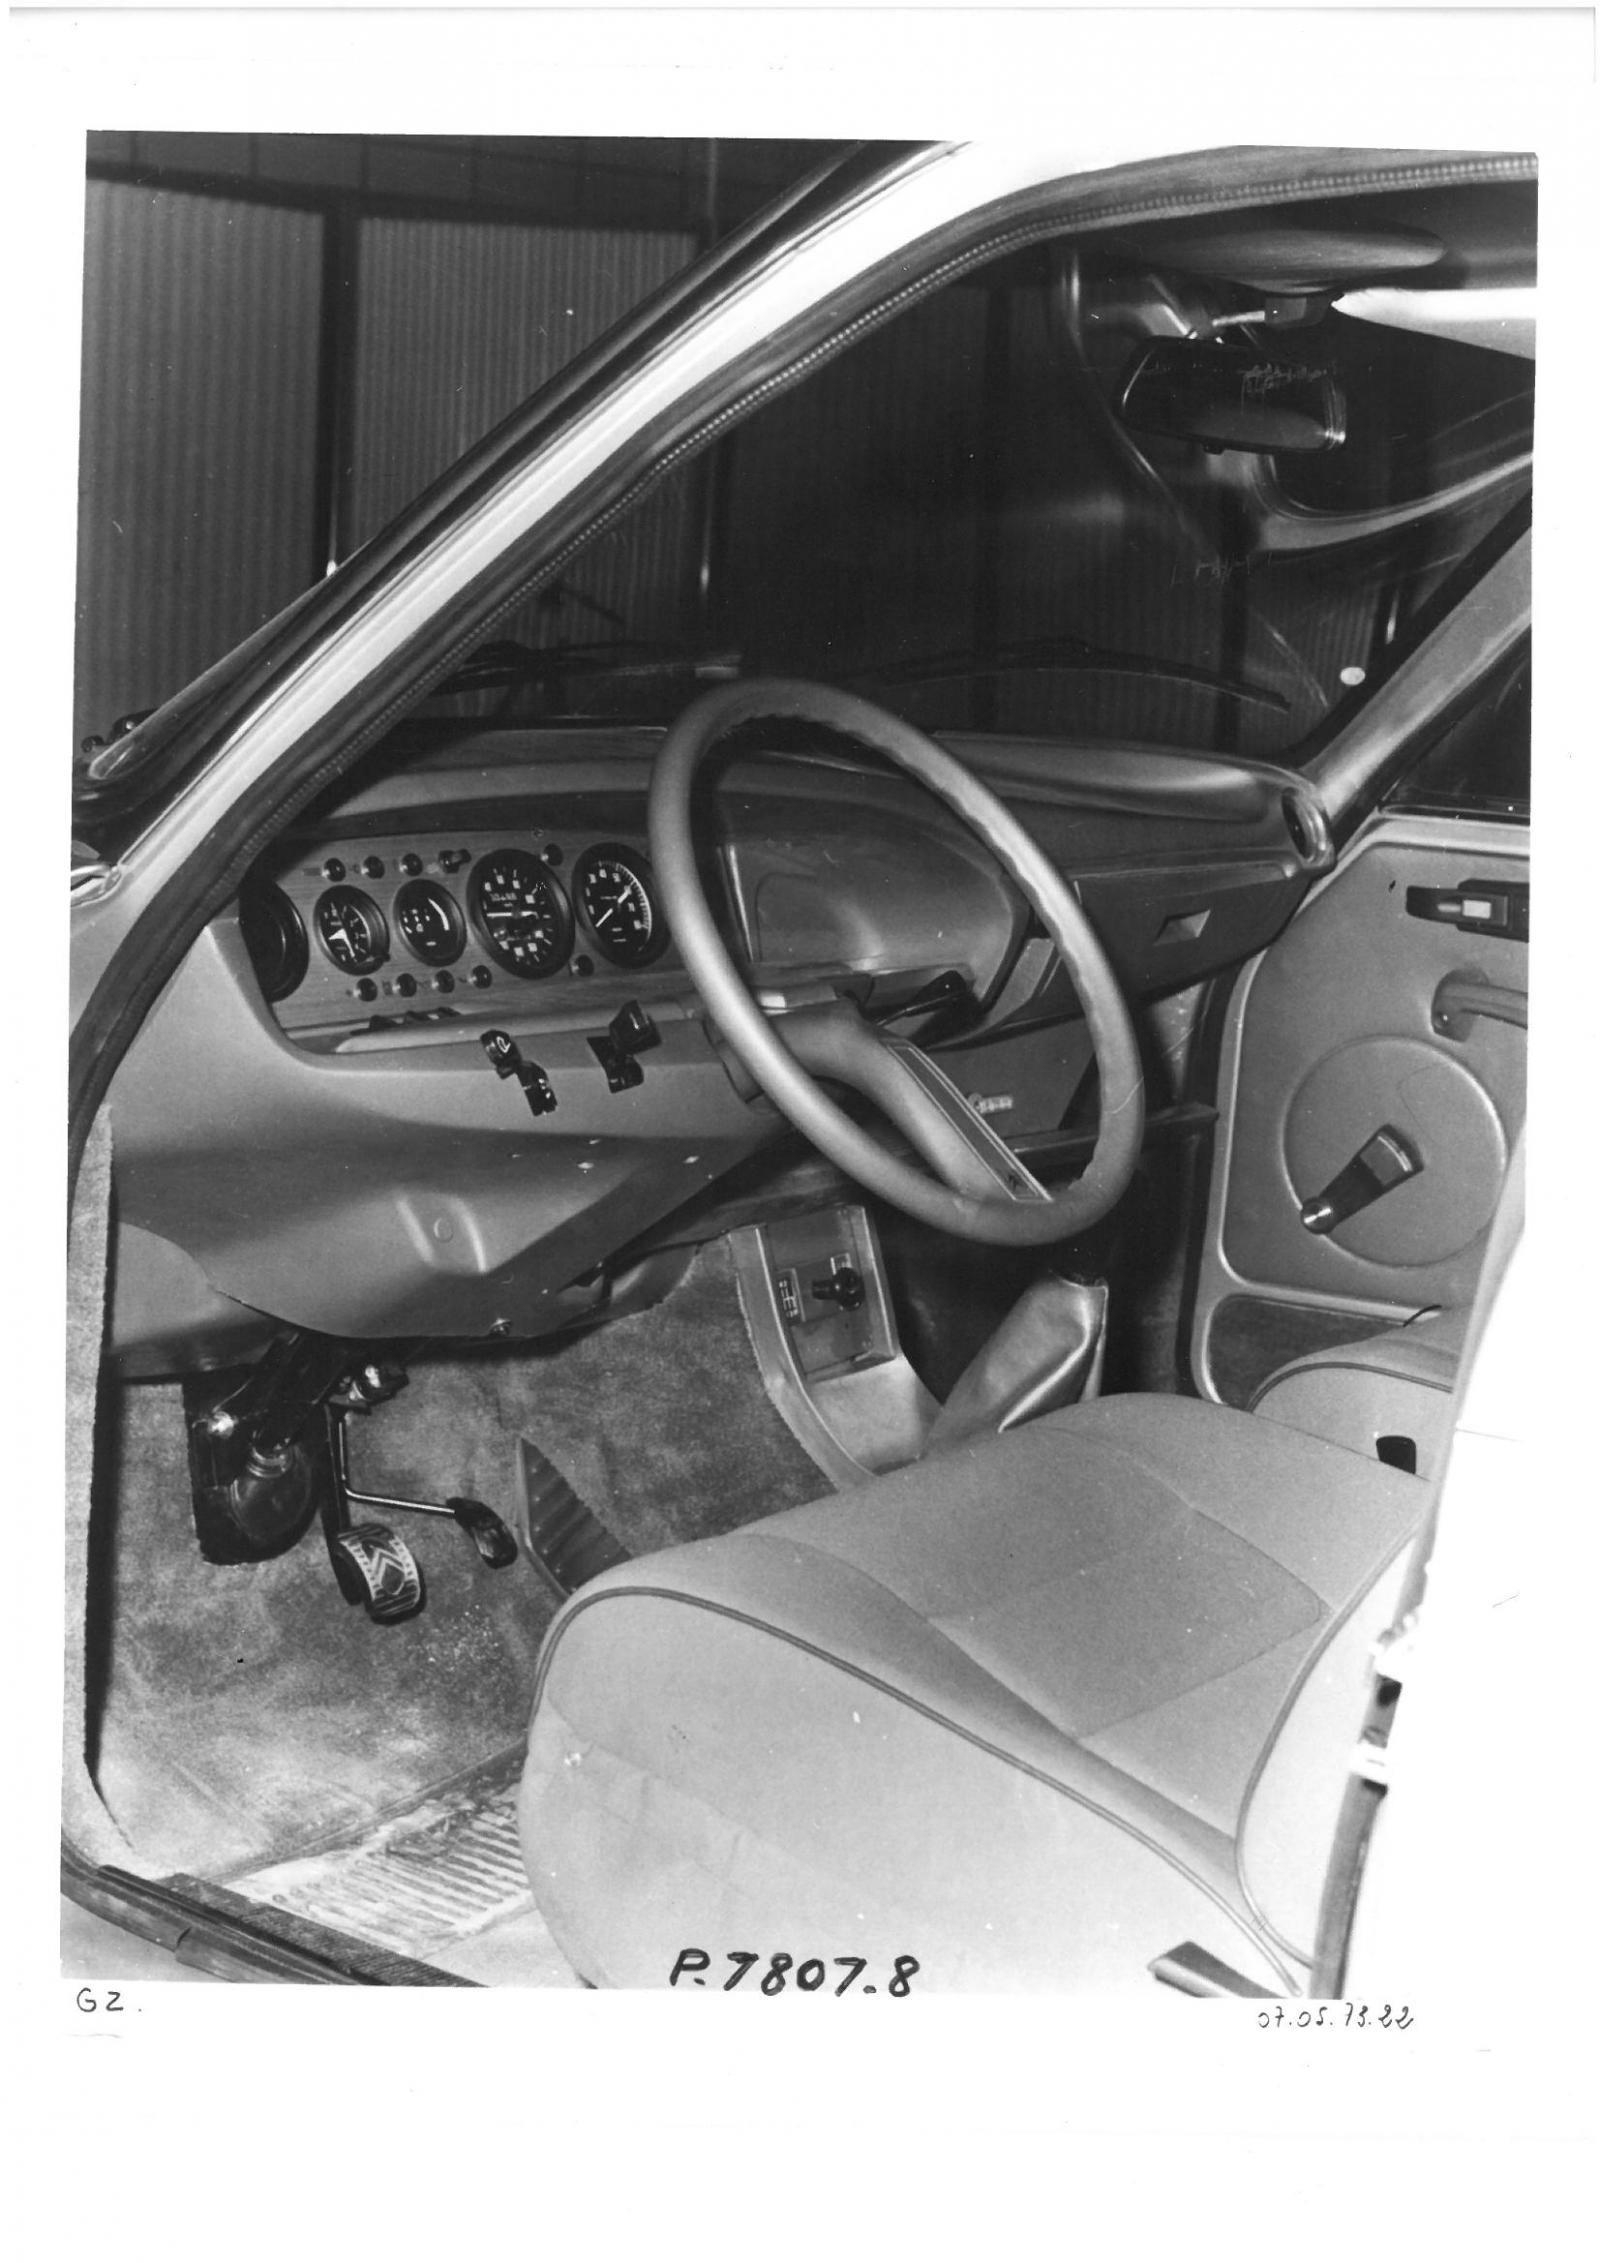 GS Birotor dashboard